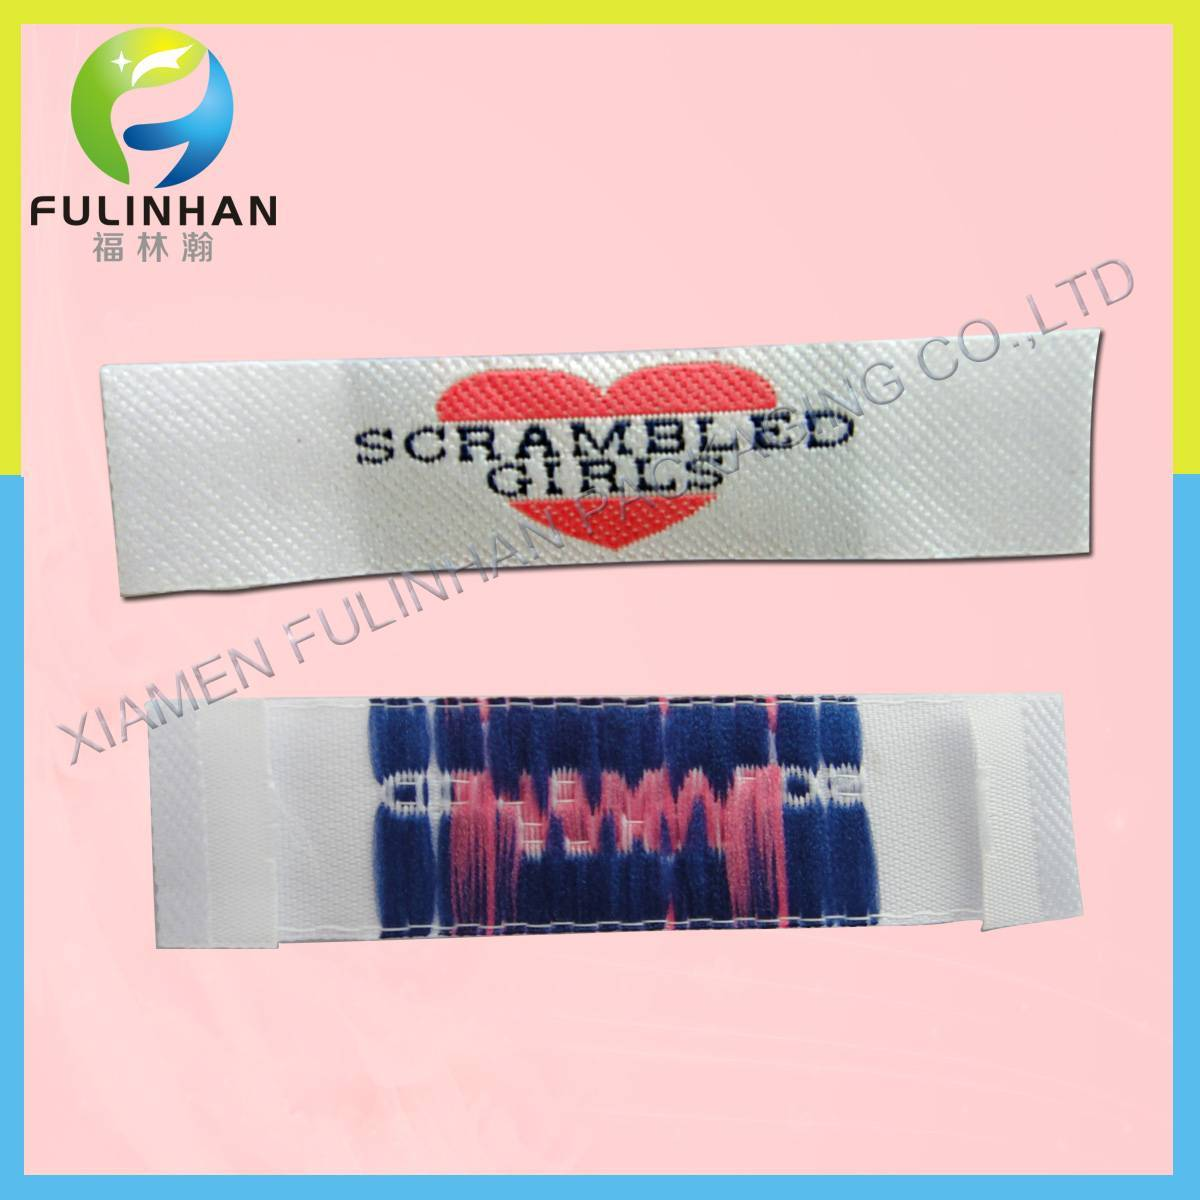 China Directly Factory Professional Customized woven label like main label/neck label with exquisite